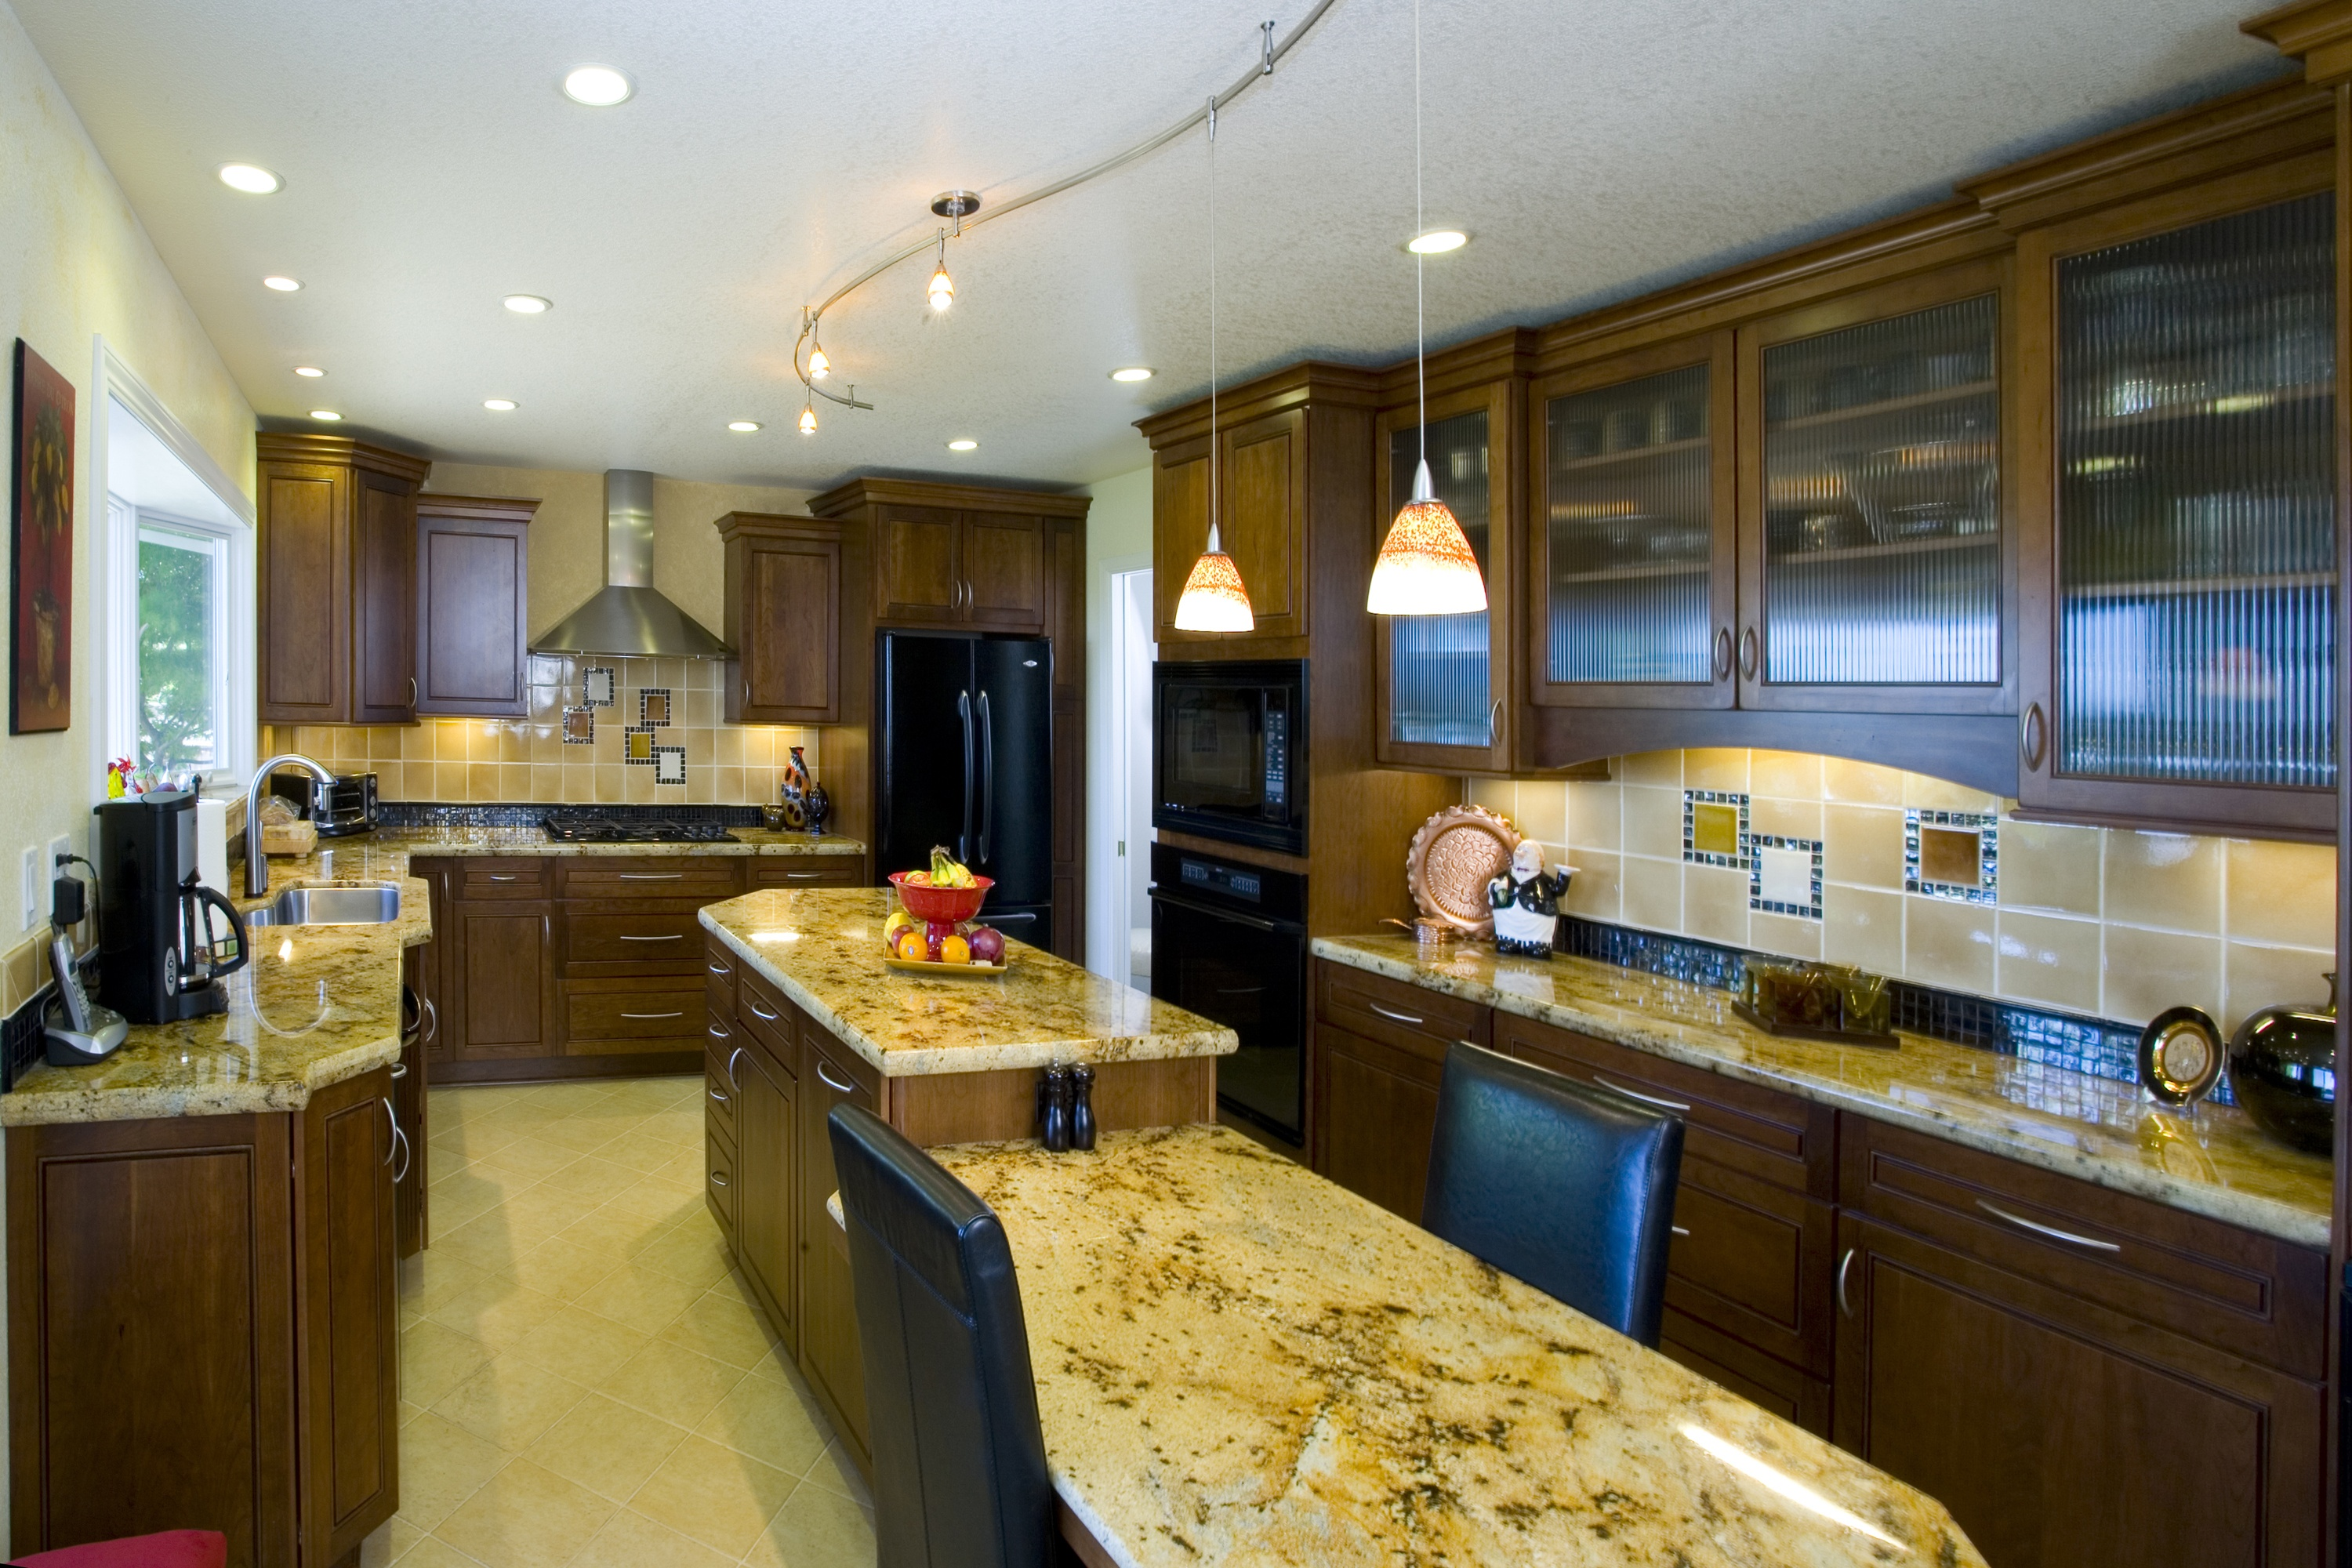 Consider These Elements Before Adding onto Your Kitchen